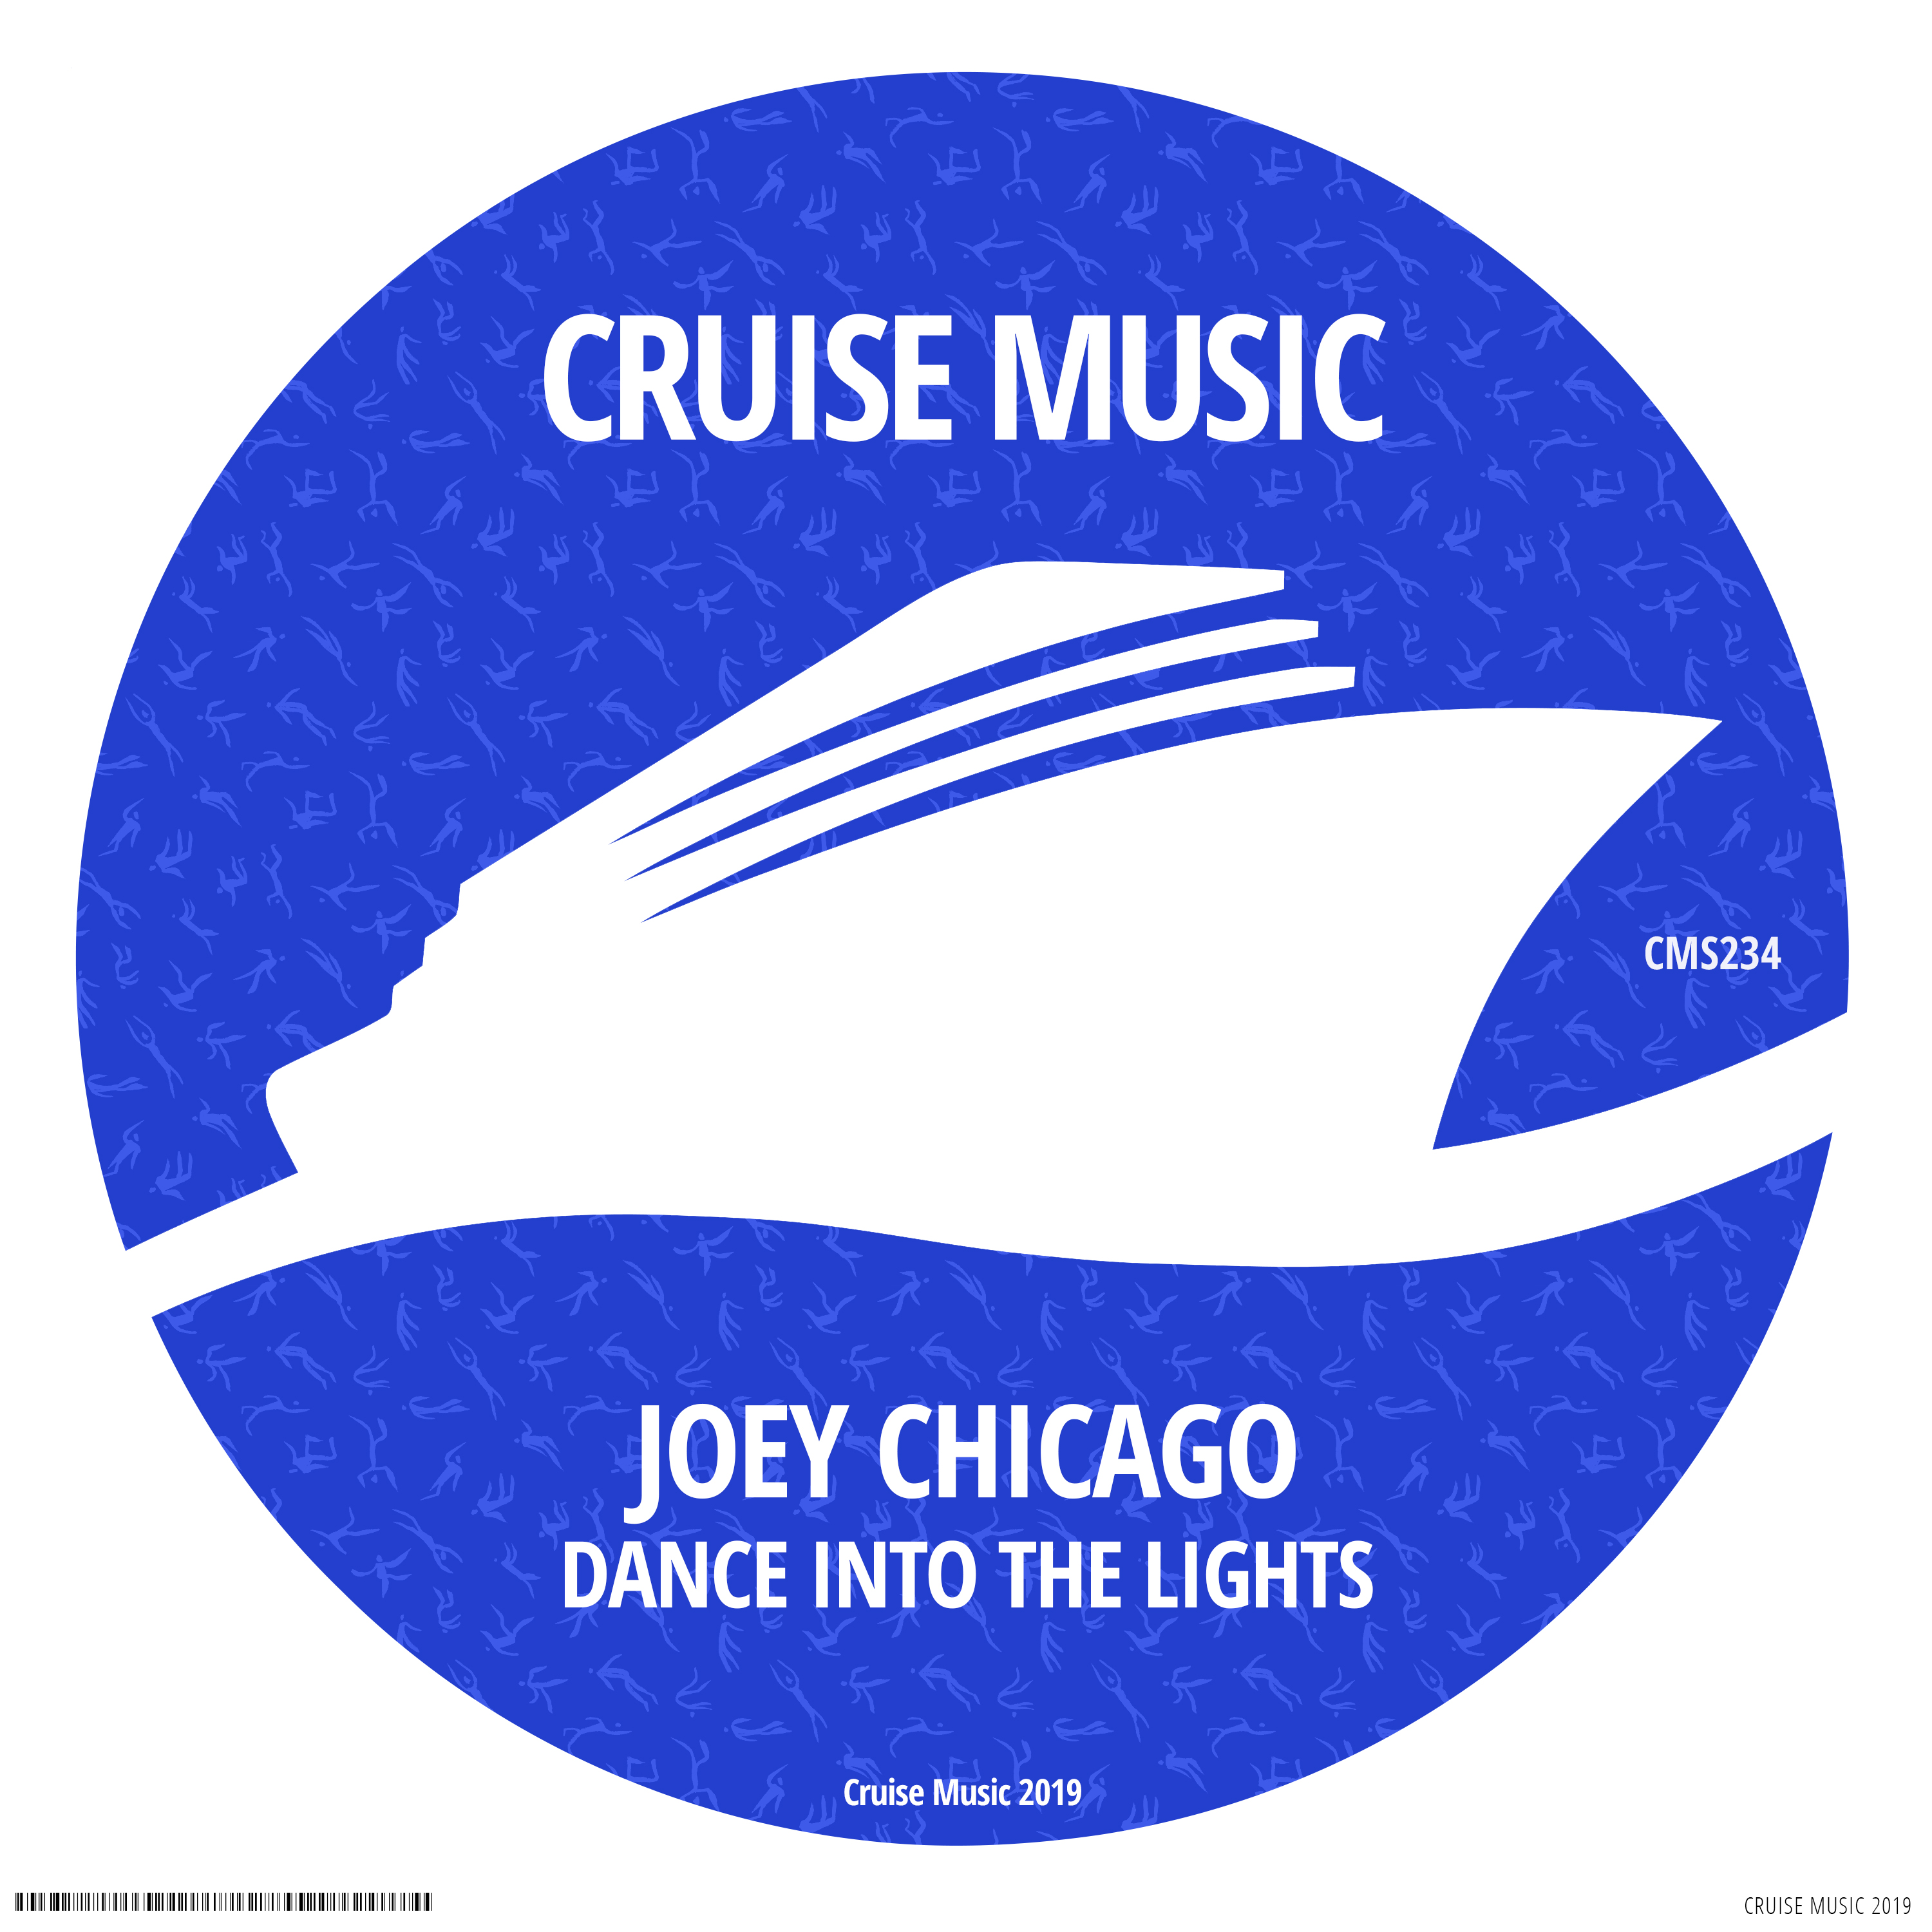 Joey Chicago - Dance Into The Lights